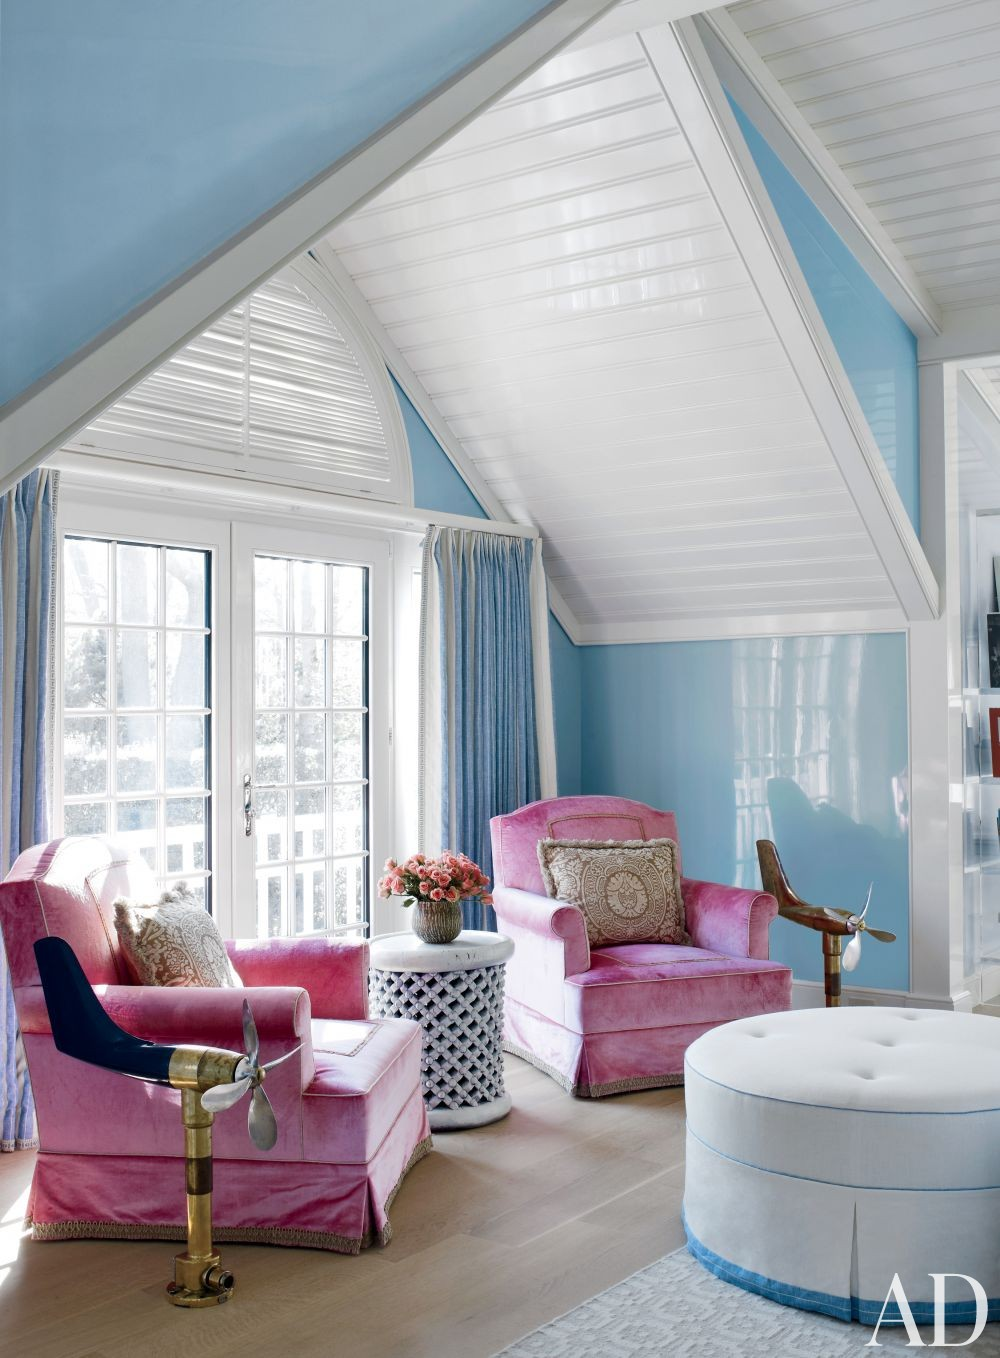 beach-bedroom-baby blue cottage hamptons cathedral ceiling pink velvet sofa chairs inspiration pinterest pantone serentiy double doors terrace balcony french colonial shop room ideas